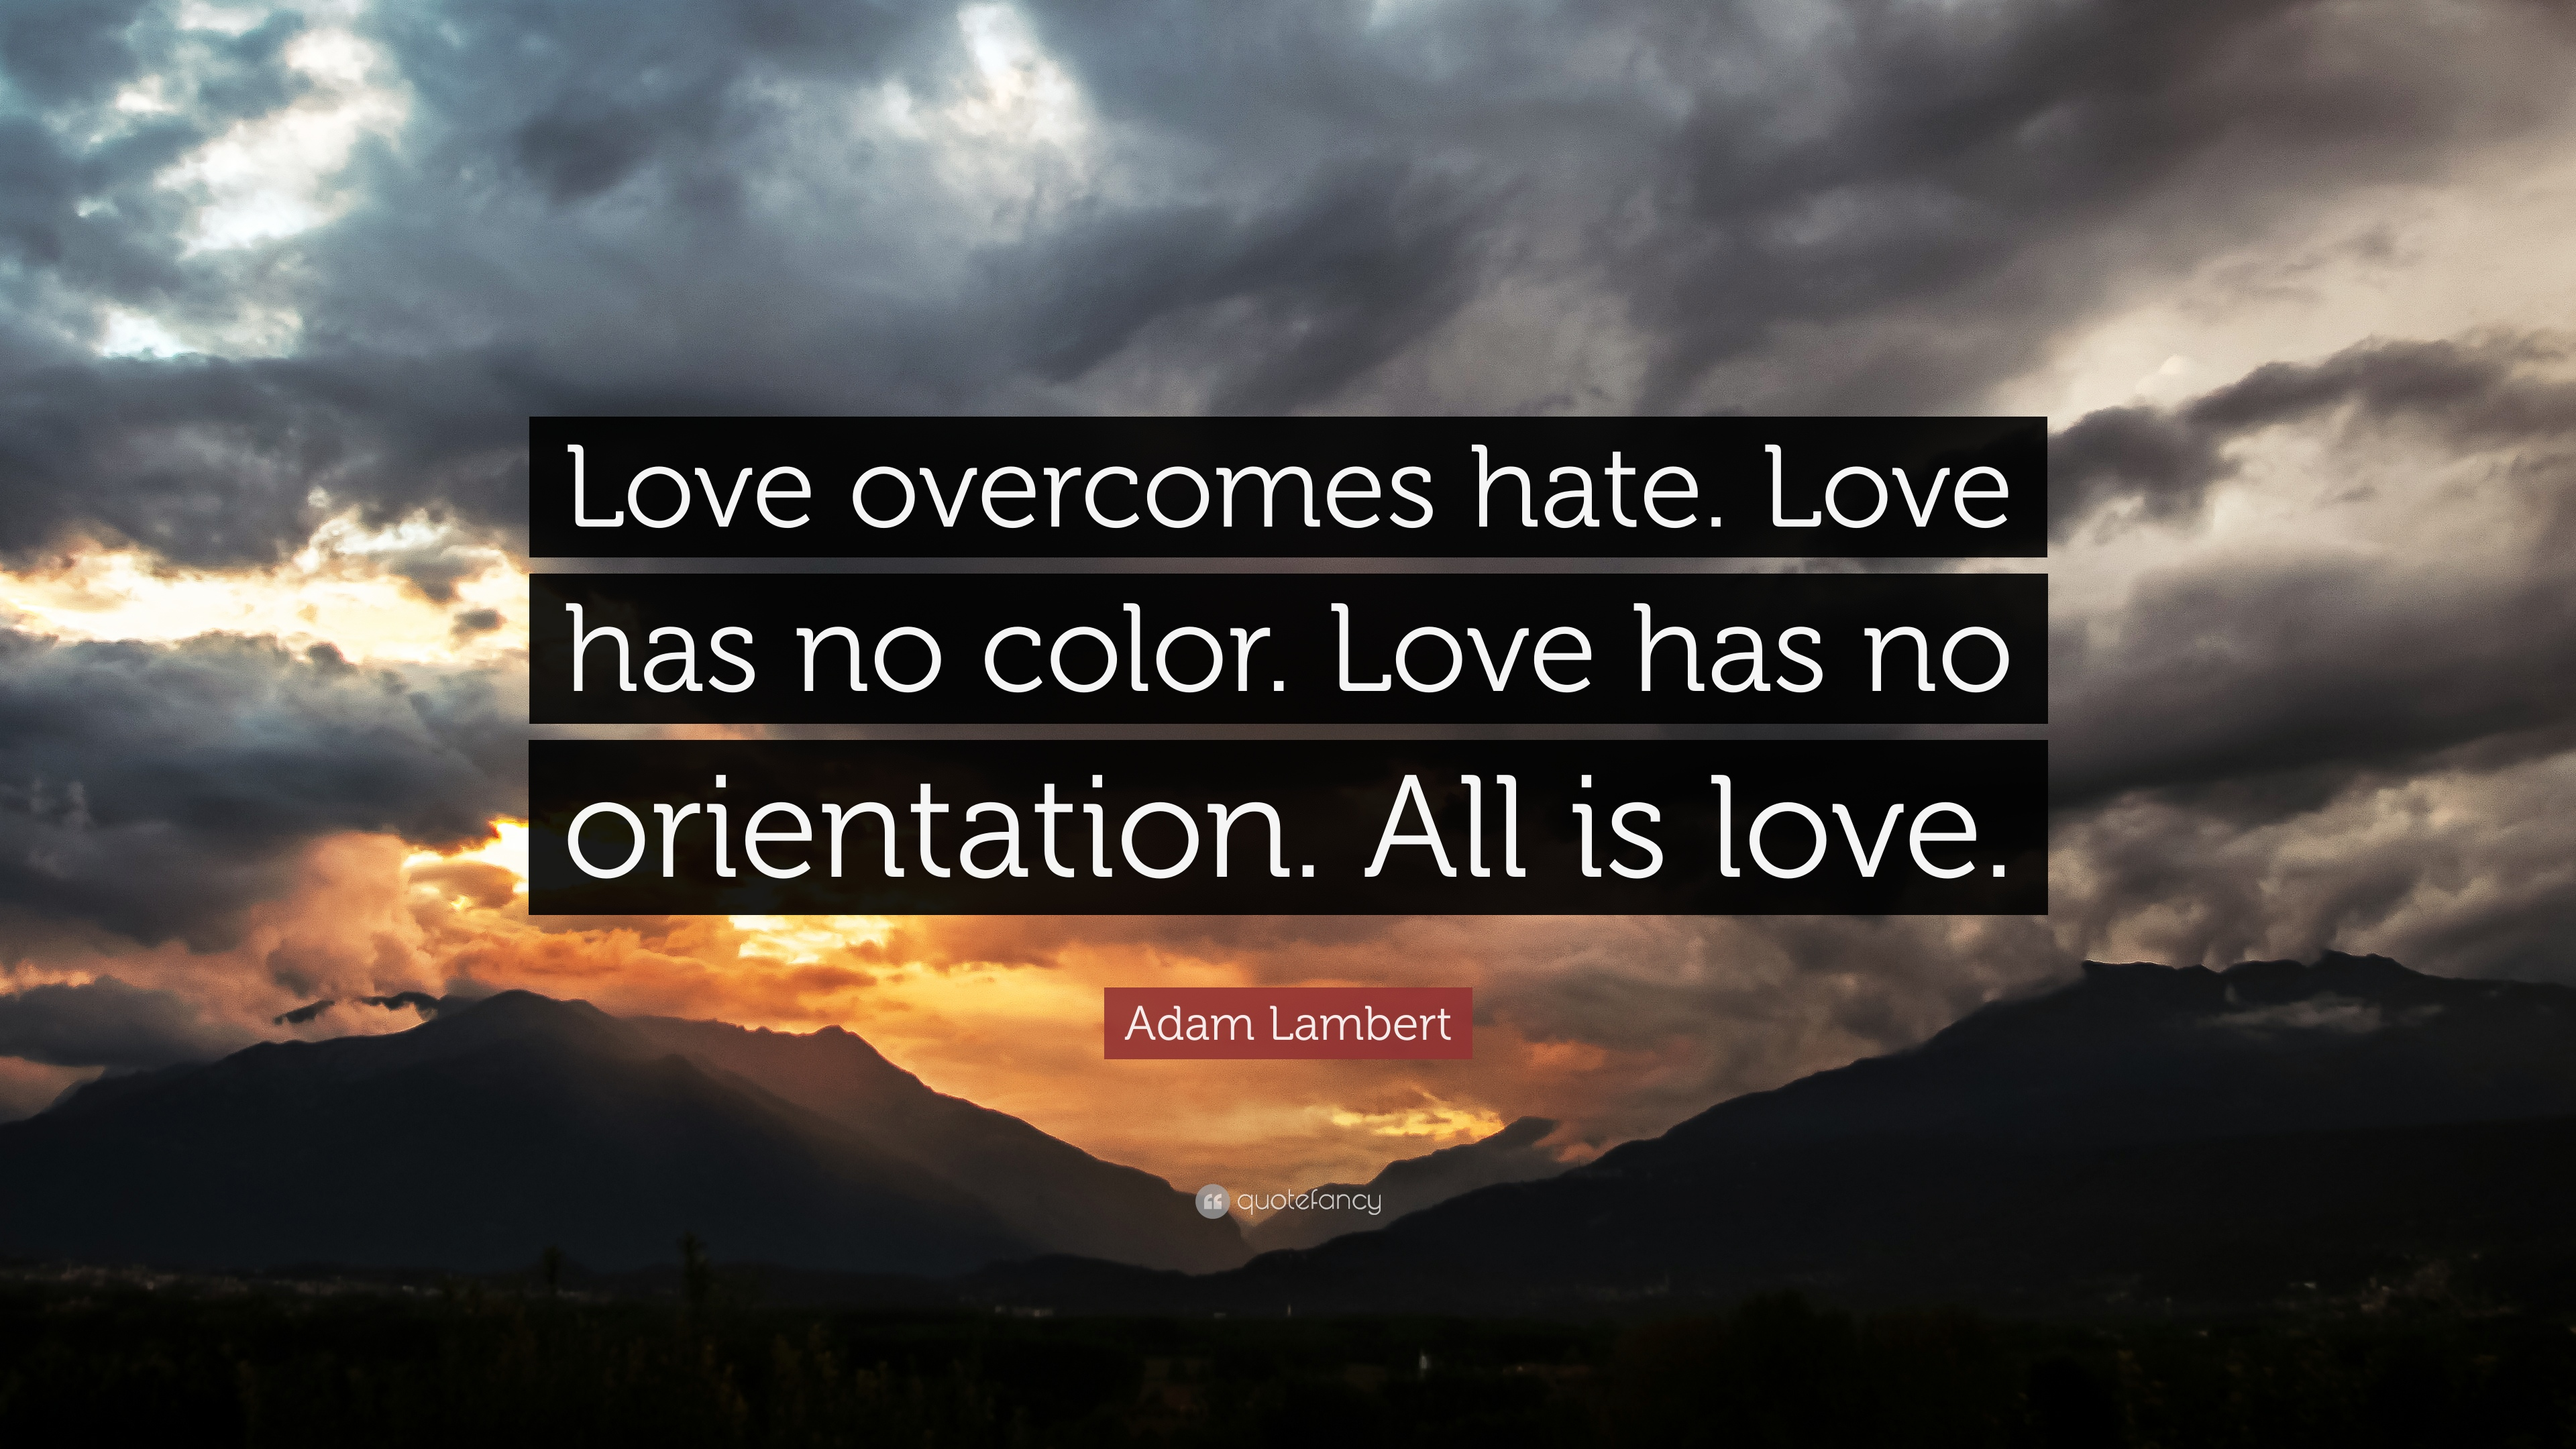 Adam Lambert Quote Love Overcomes Hate Love Has No Color Love